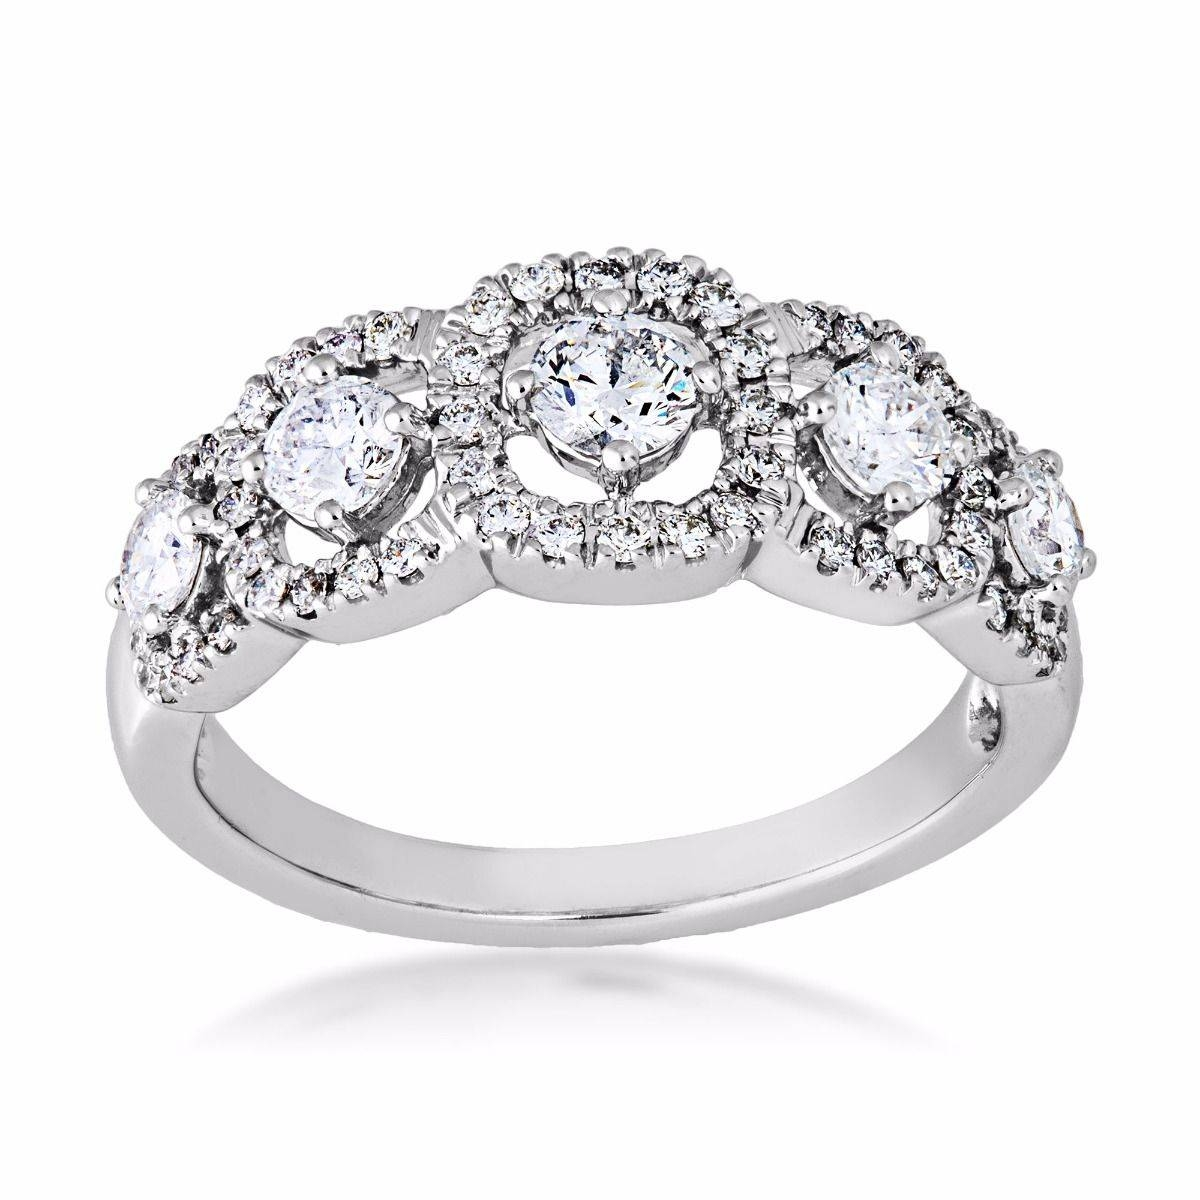 Women's Diamond Anniversary Bands – Shop Anniversary Rings, Bands With Regard To 2018 Diamond Anniversary Rings For Women (View 25 of 25)